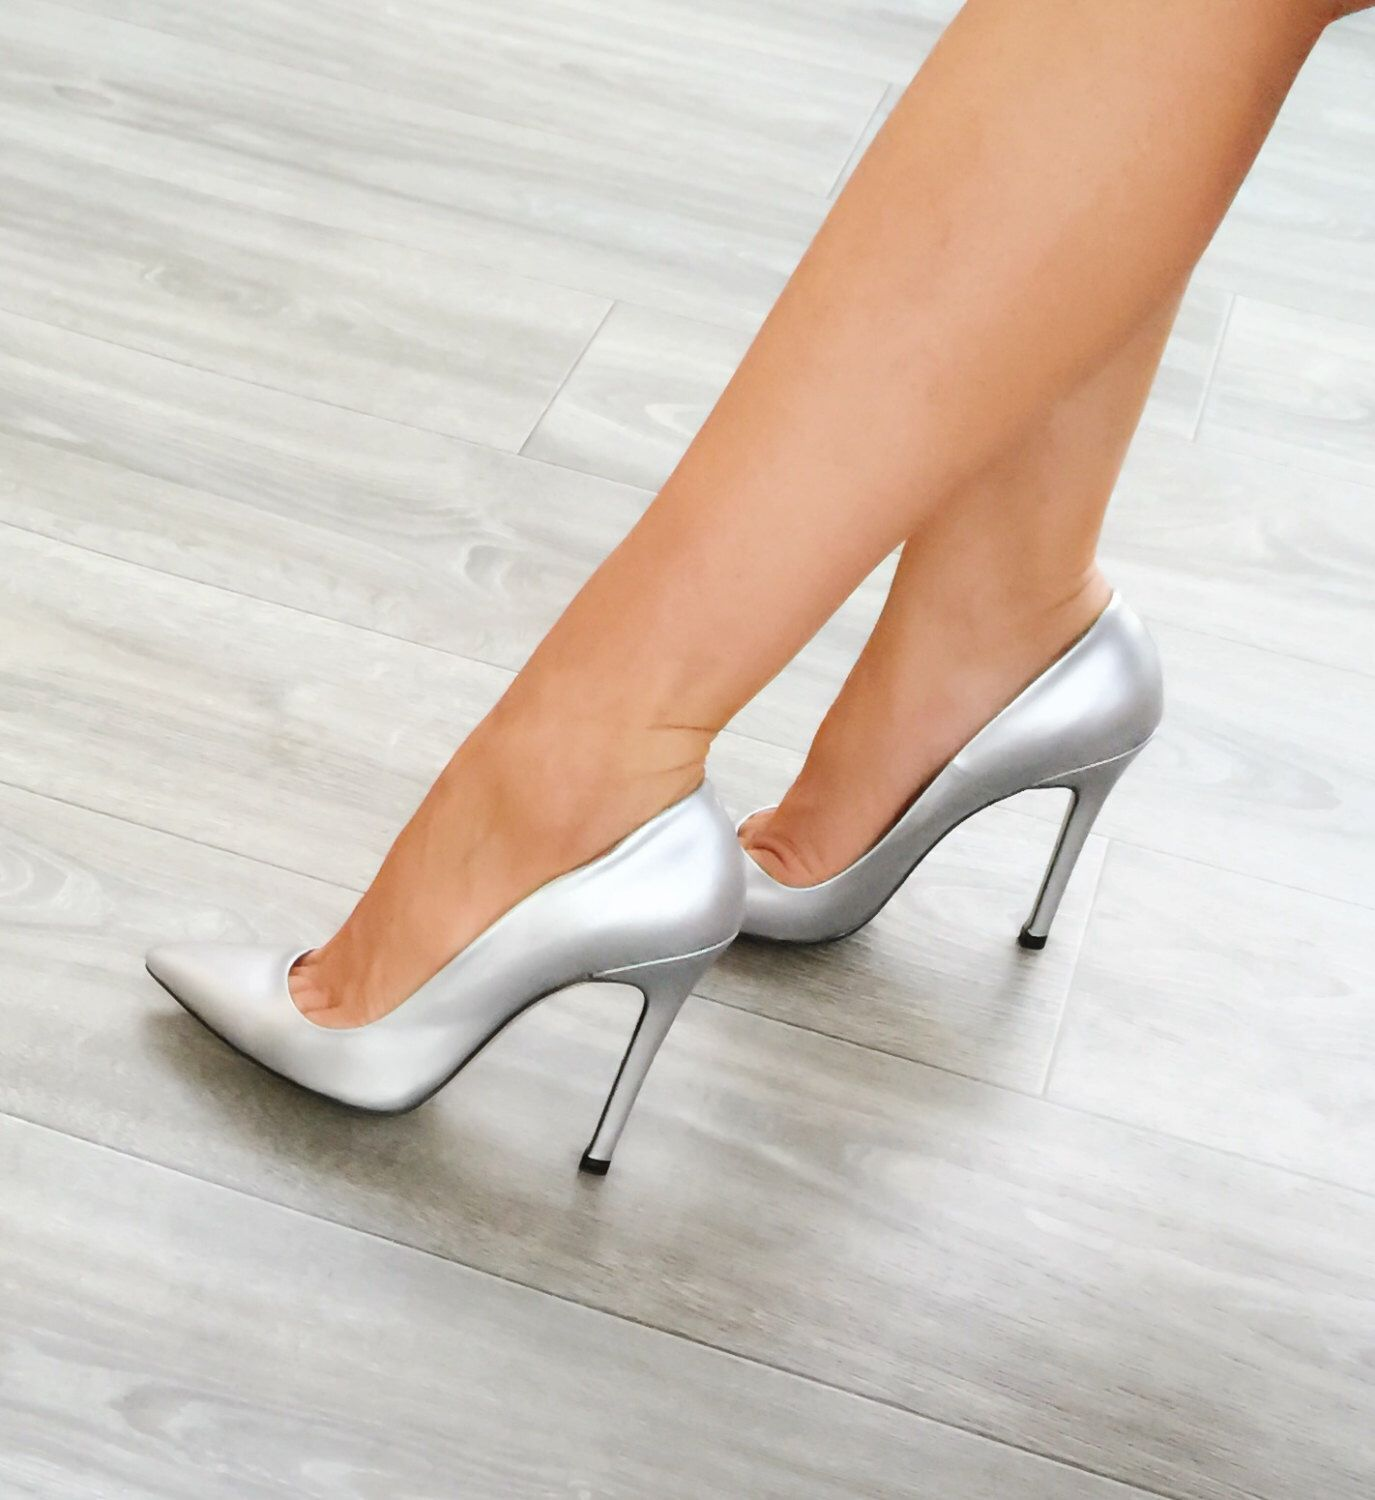 1feaf39378b PEARL Pearlescent Silver Stilettos   Pumps  Silver Pumps   High Heels   High  Heeled Shoes